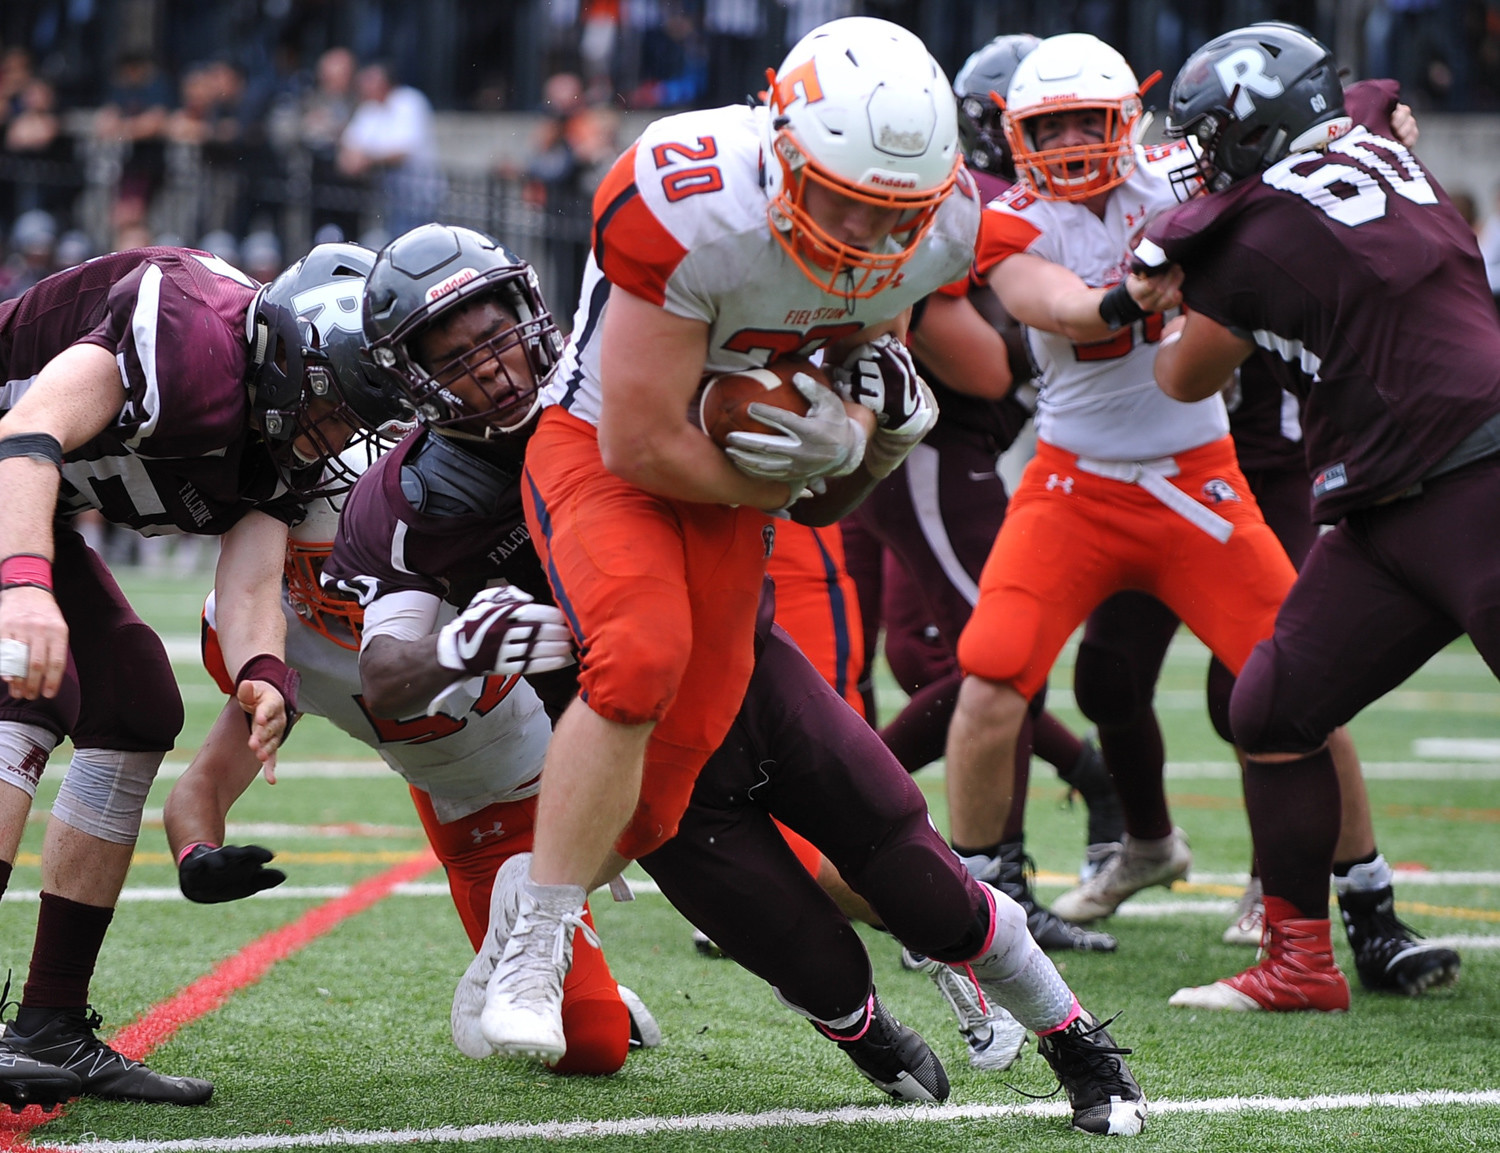 Fieldston's Josh Godosky, shown here ripping off a big gainer versus Riverdale, scored one touchdown and anchored a solid defensive effort from his linebacker spot in the Eagles' victory of the Falcons.